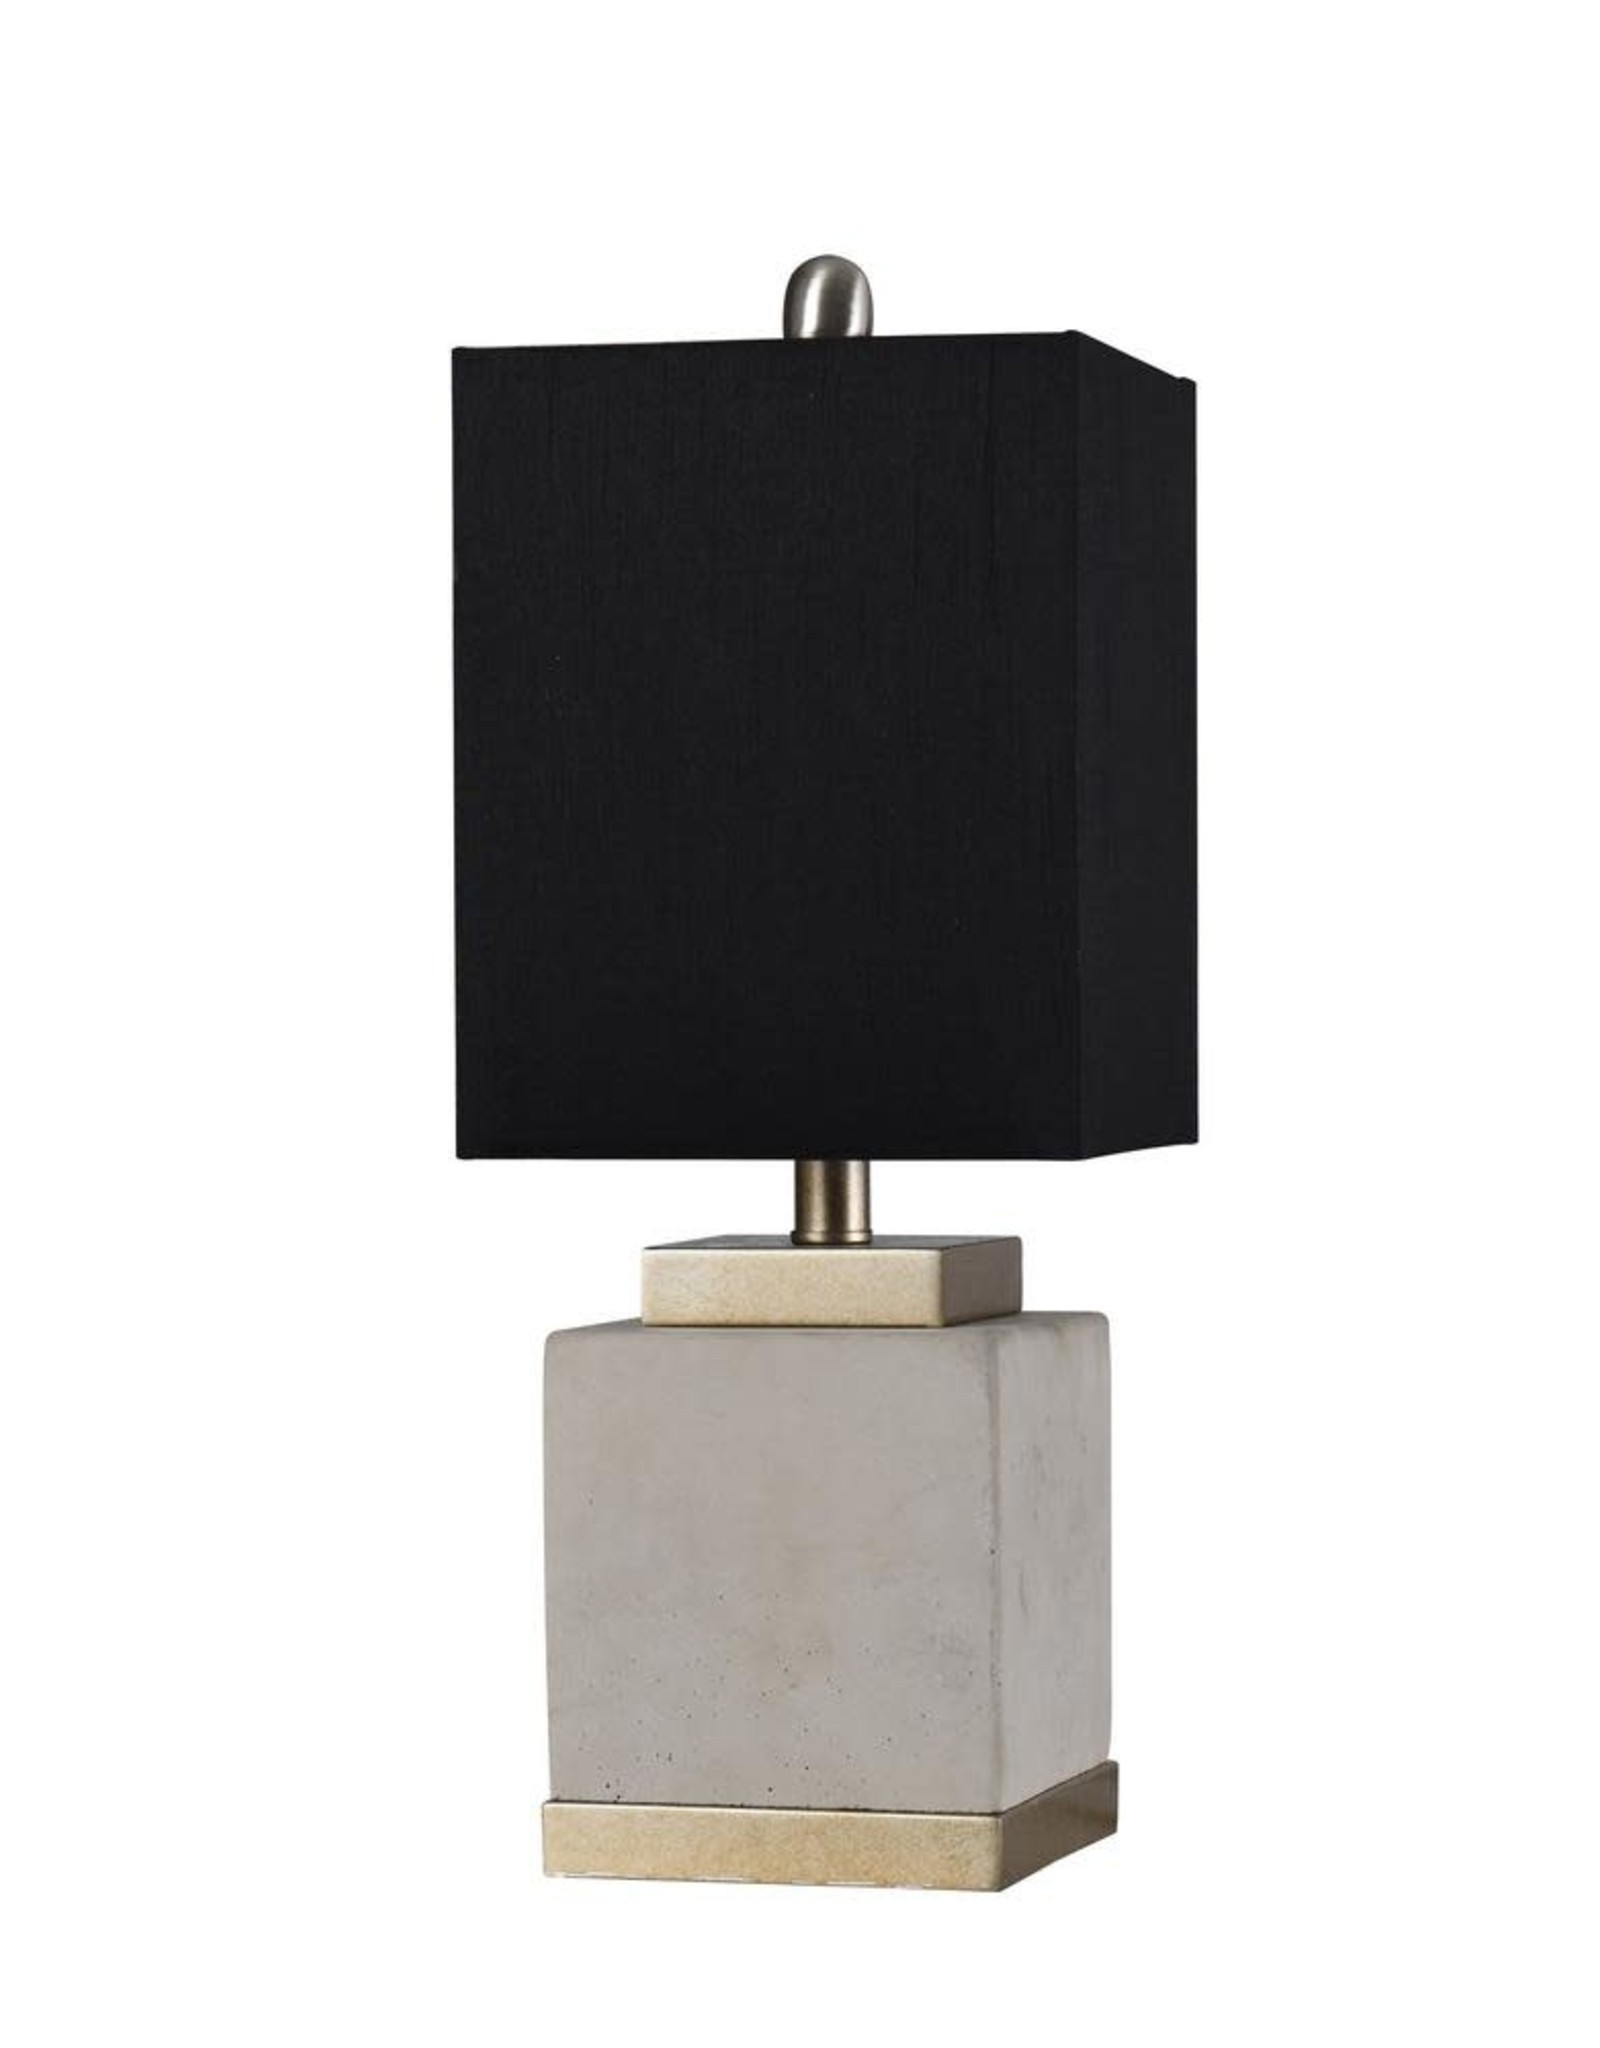 STYLECRAFT HOME CLLCTIONS 20 in. Soft Brass/Natural Cement Table Lamp with Black Hardback Fabric Shade